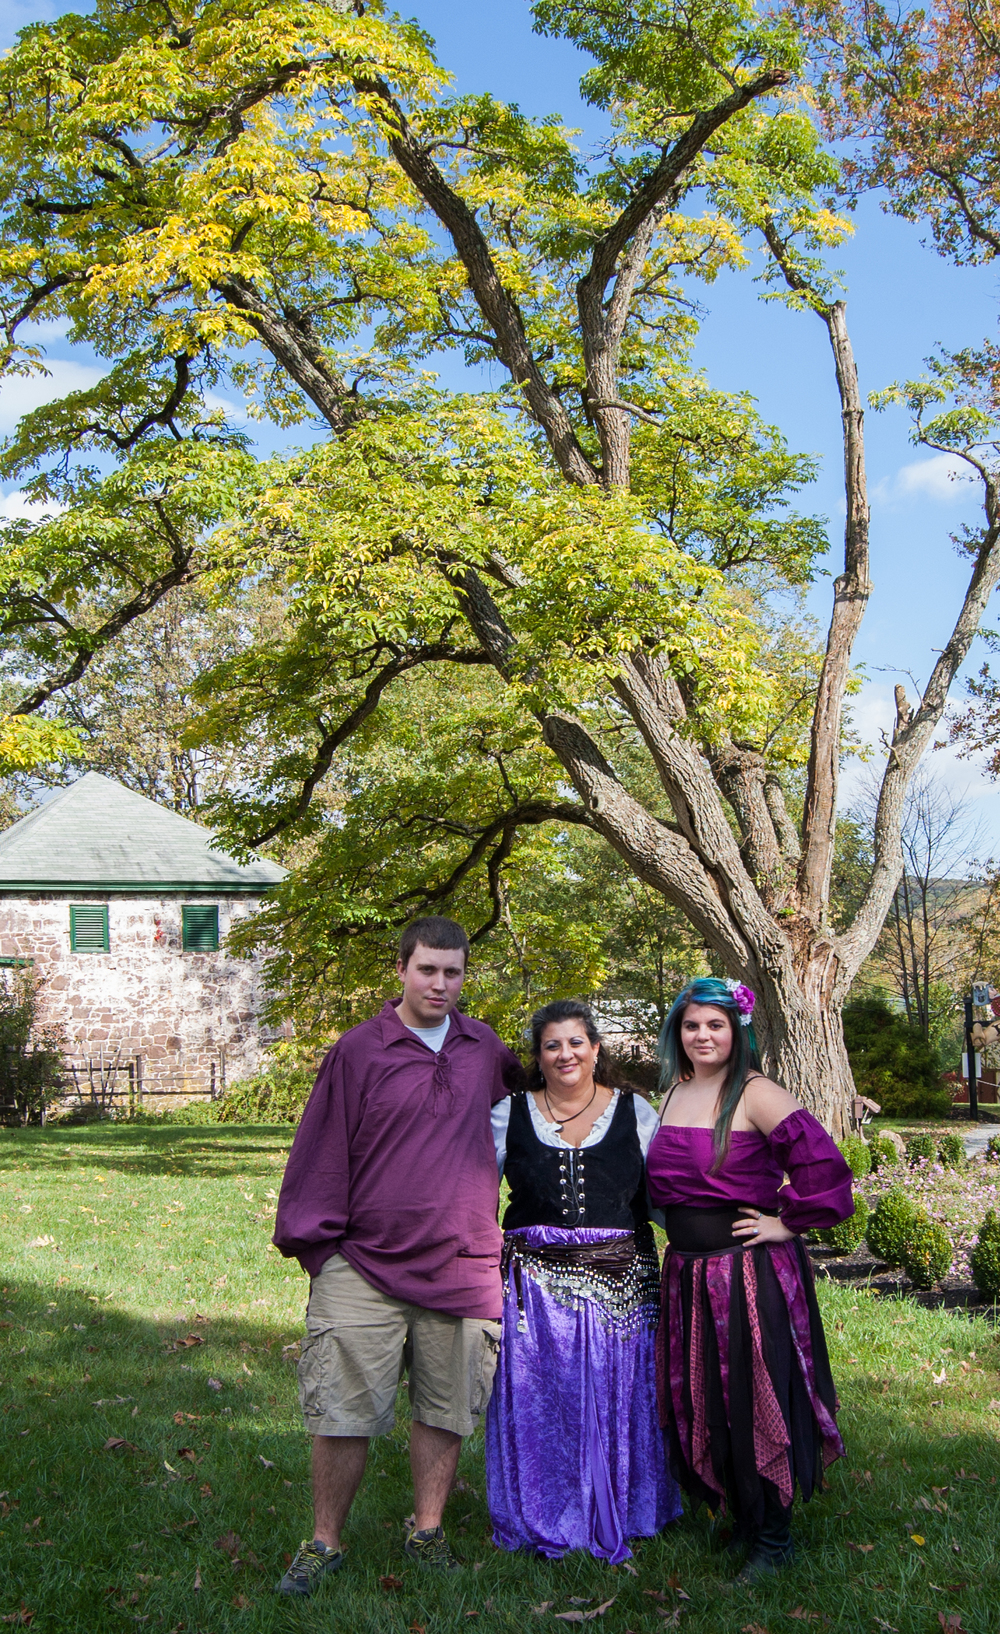 Brian, Mom, and Me at the Ren. Faire